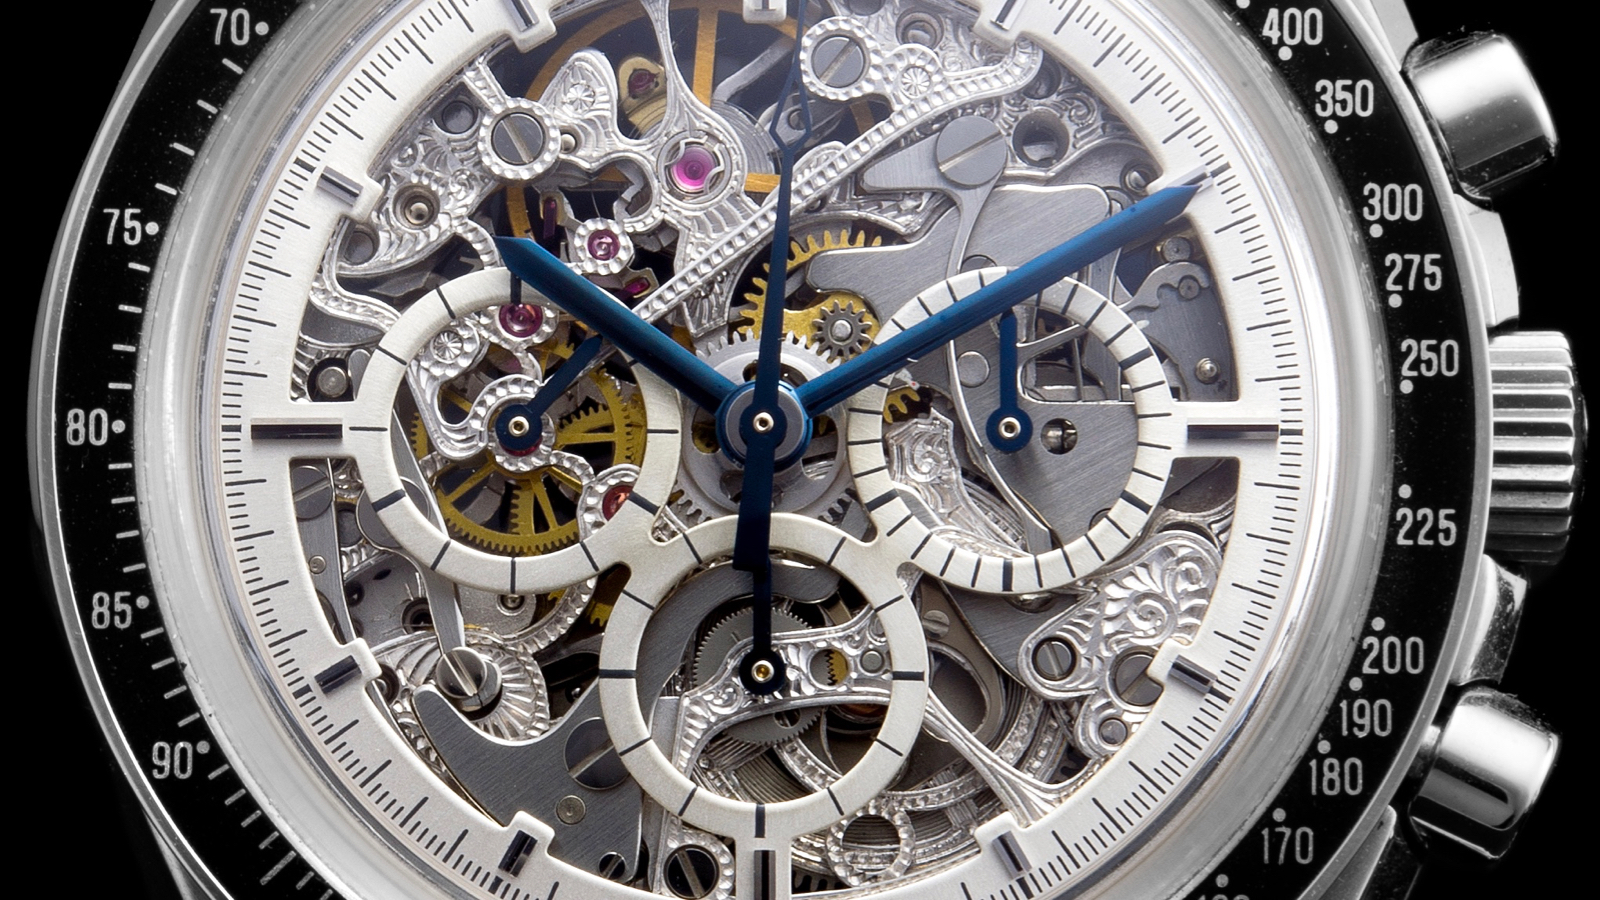 THE SKELETONIZED SPEEDMASTER SERIES